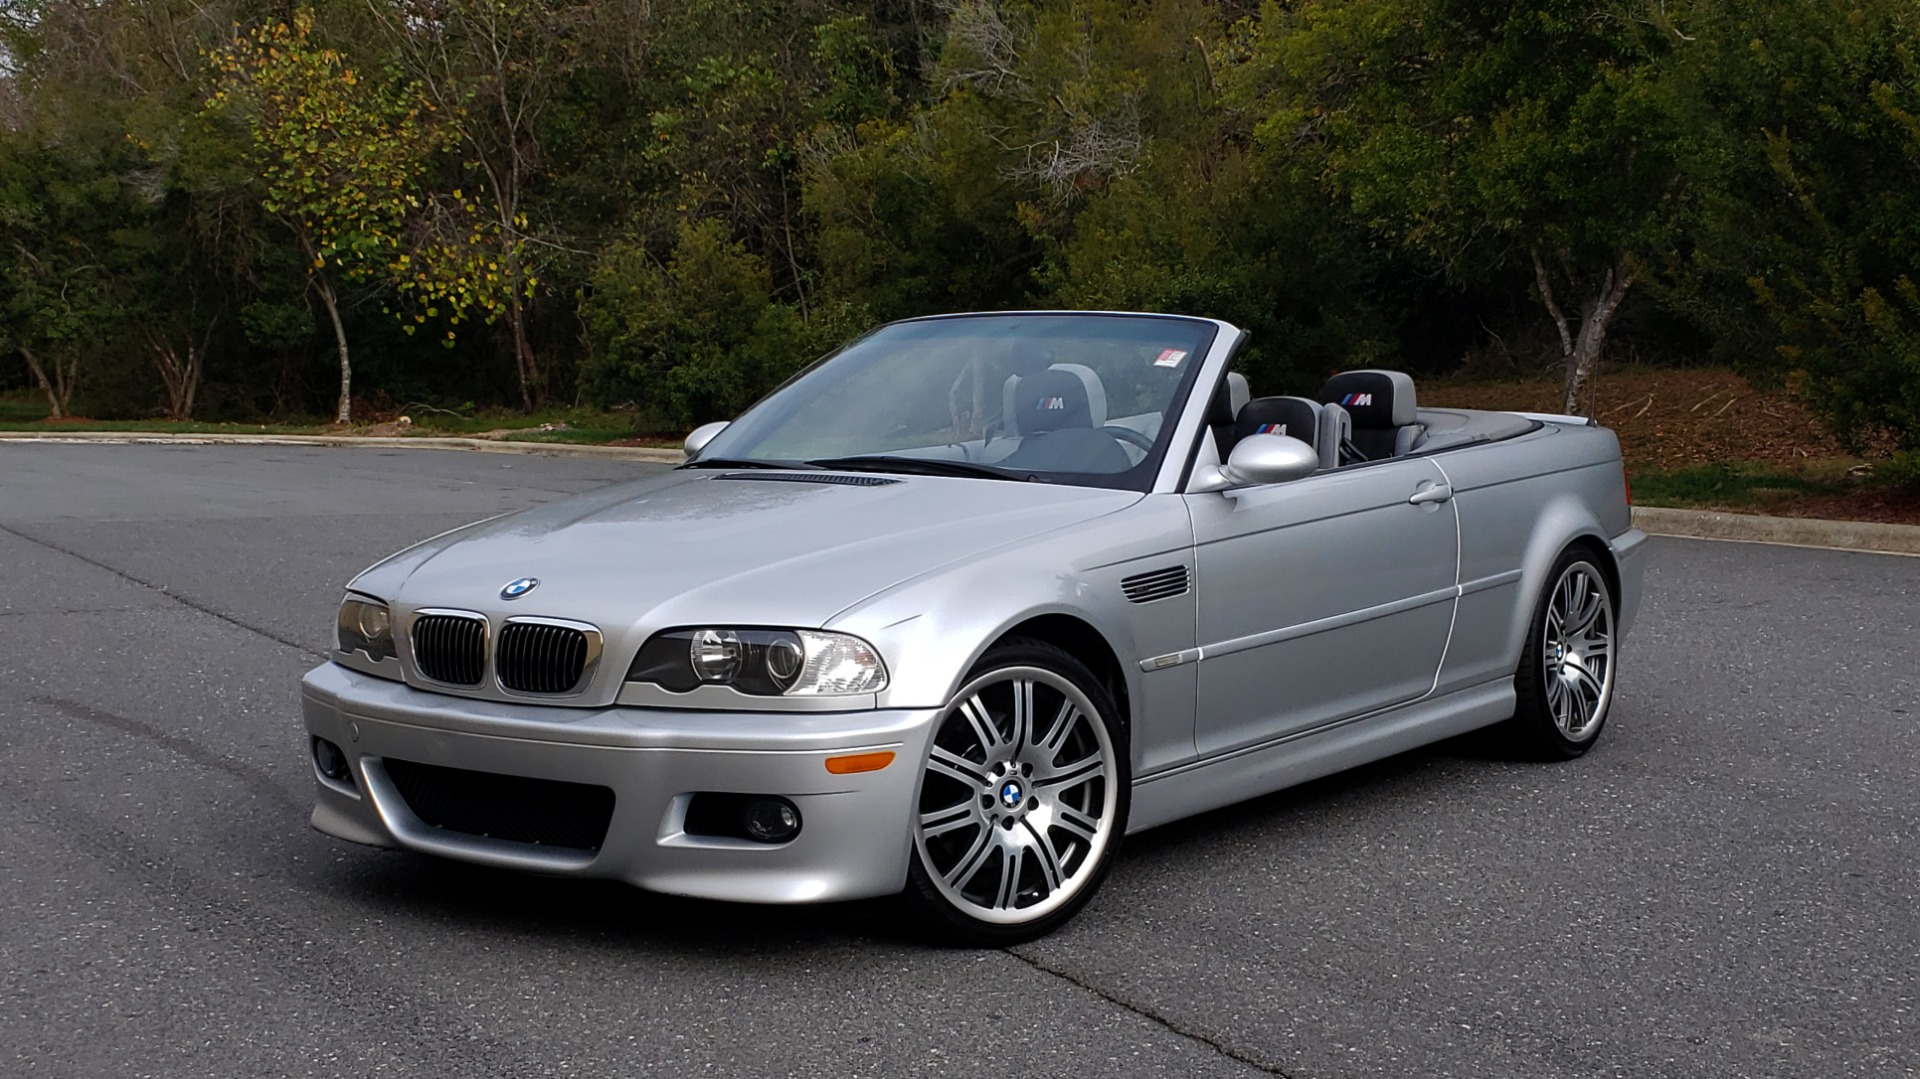 Used 2002 BMW M3 CONVERTIBLE / 6-SPD MAN / XENON / 19IN WHEELS for sale Sold at Formula Imports in Charlotte NC 28227 1